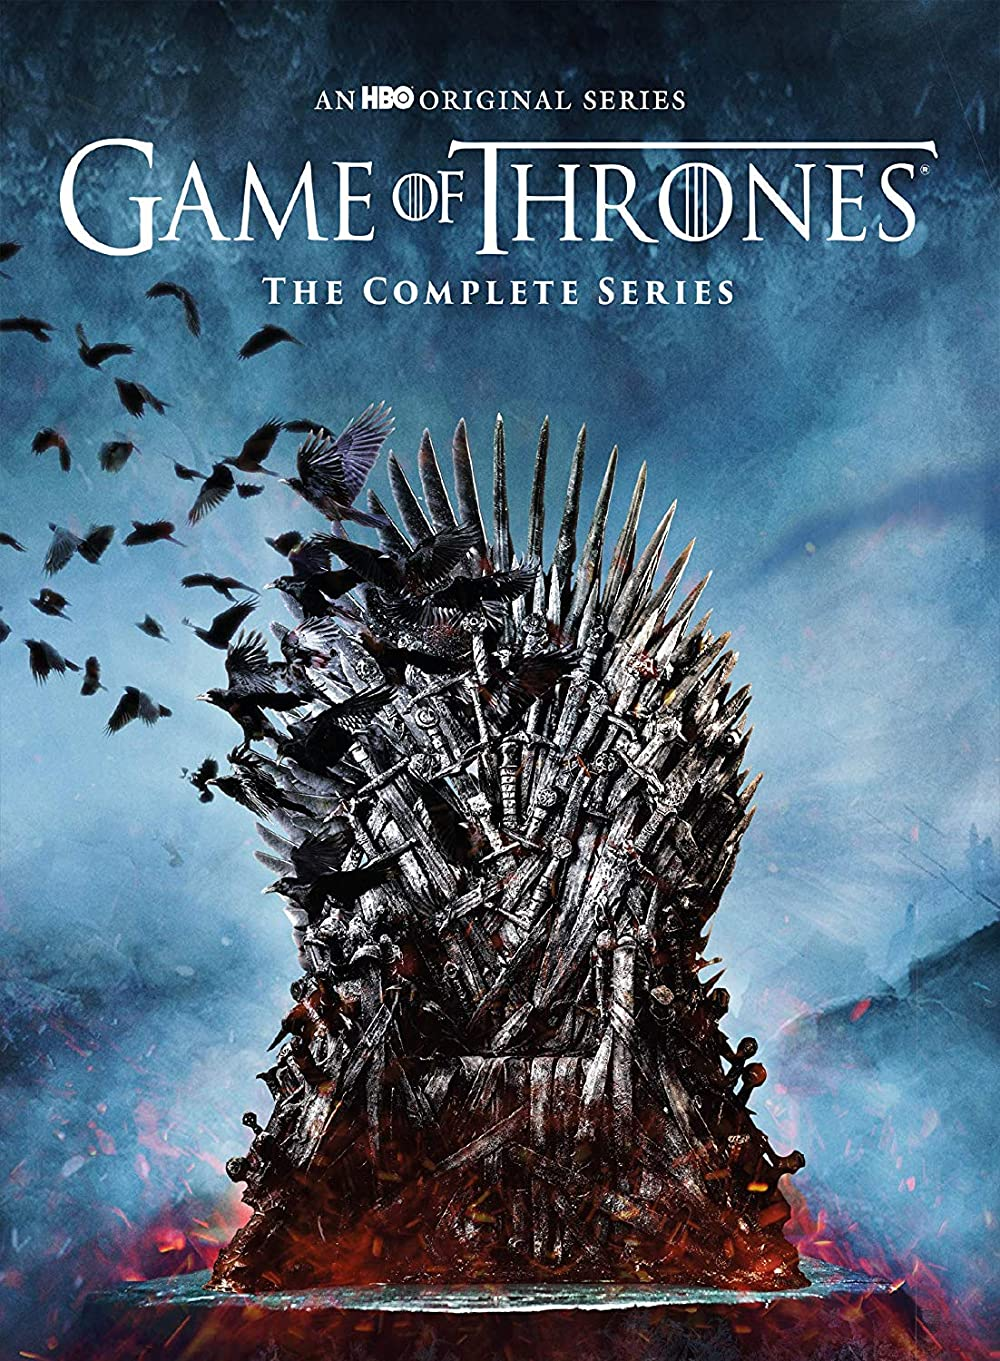 Game of Thrones - TV on Google Play